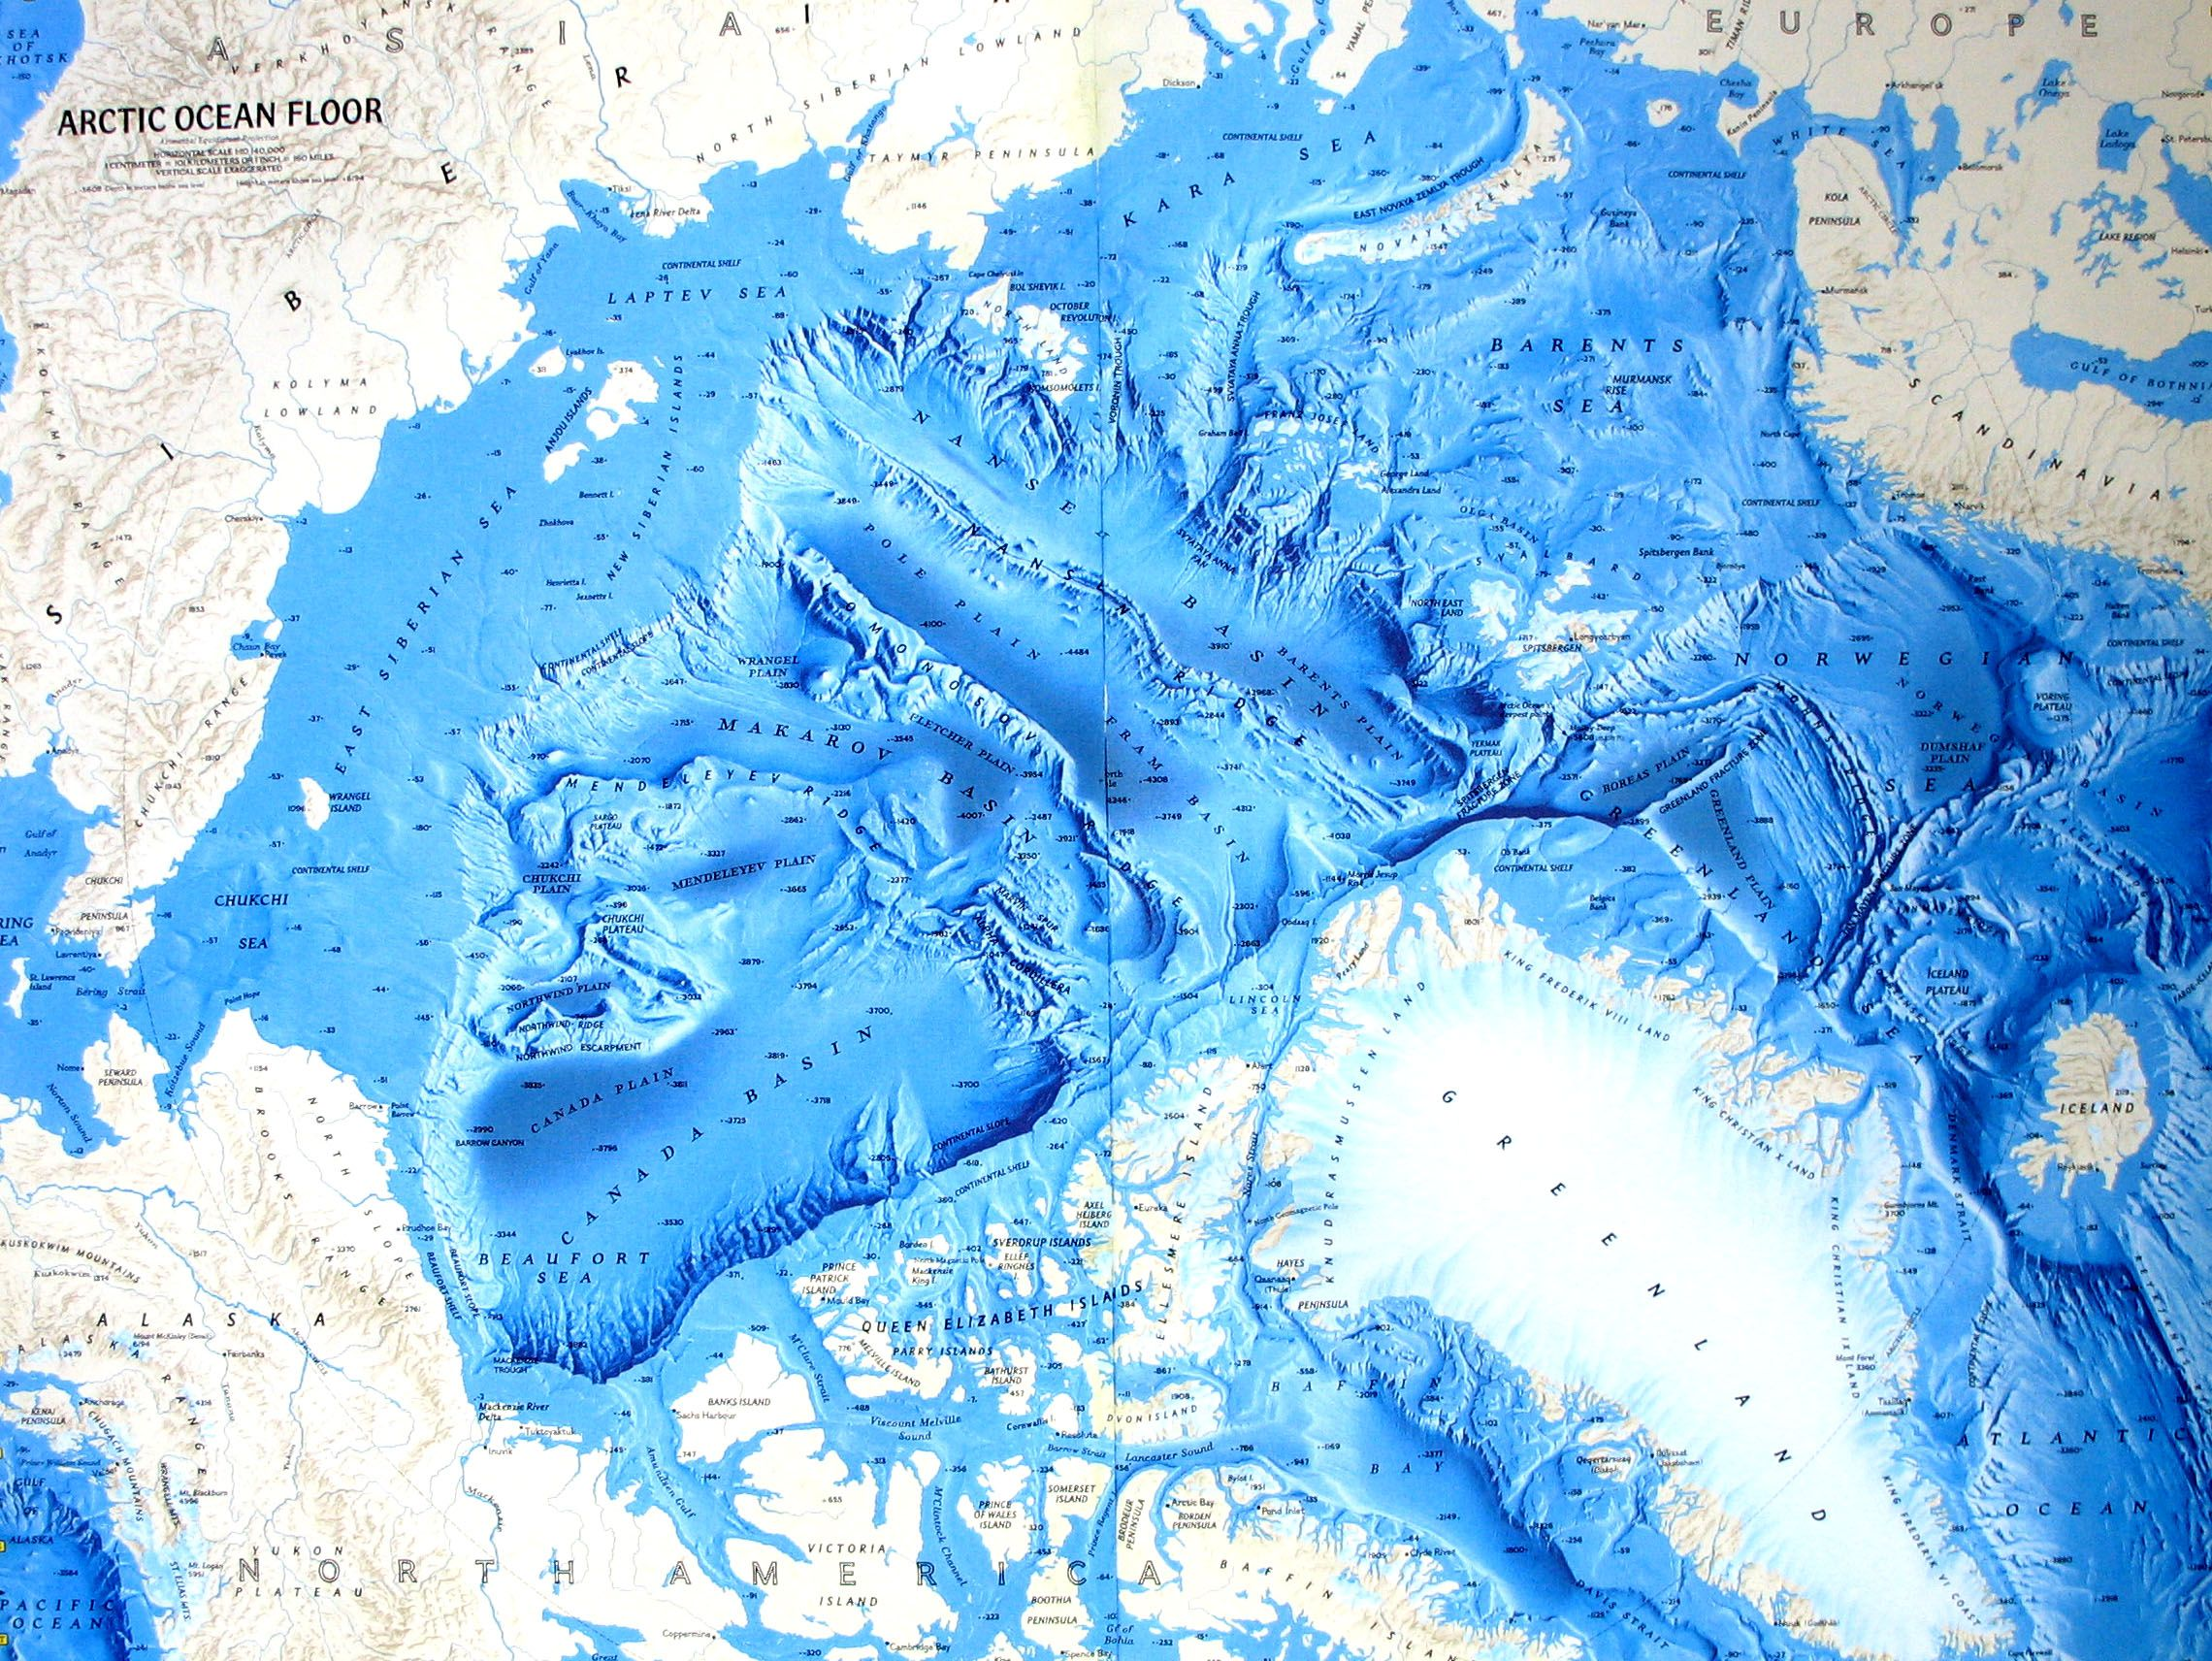 Ocean floor relief maps detailed maps of sea and ocean depths ocean floor relief maps detailed maps of sea and ocean depths foto gallery on gumiabroncs Image collections